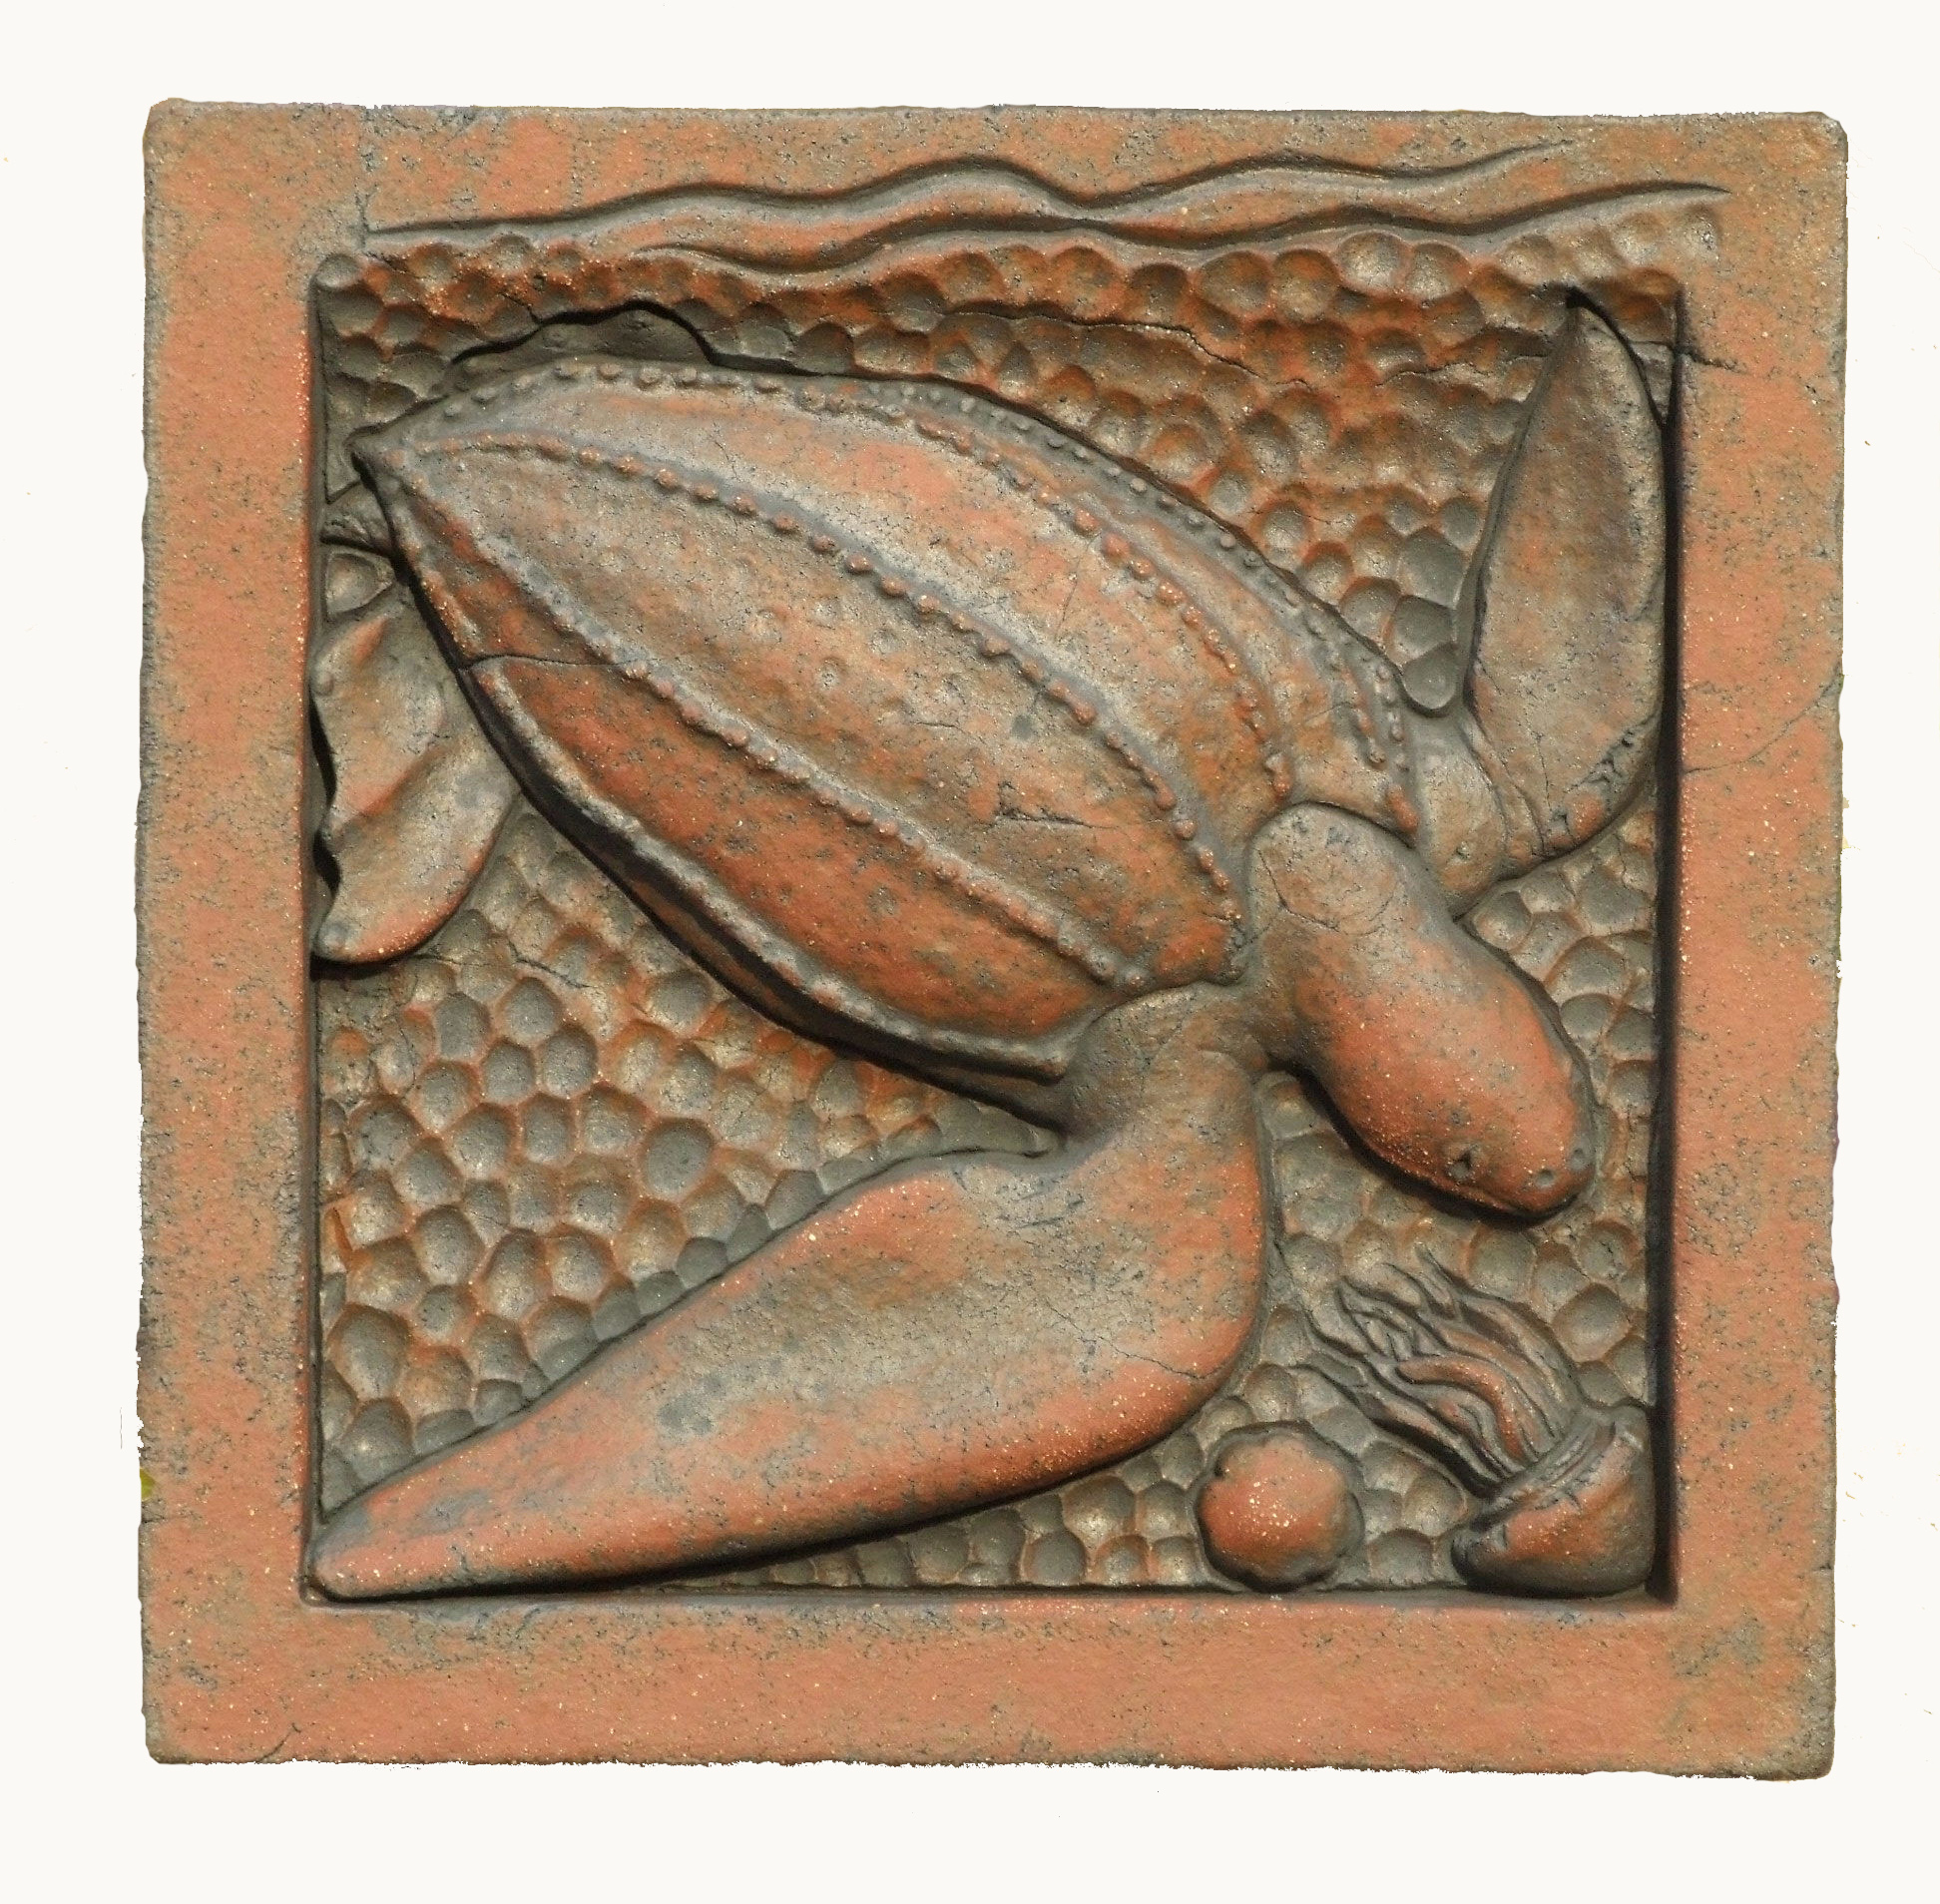 Leatherback Turtle in terracotta